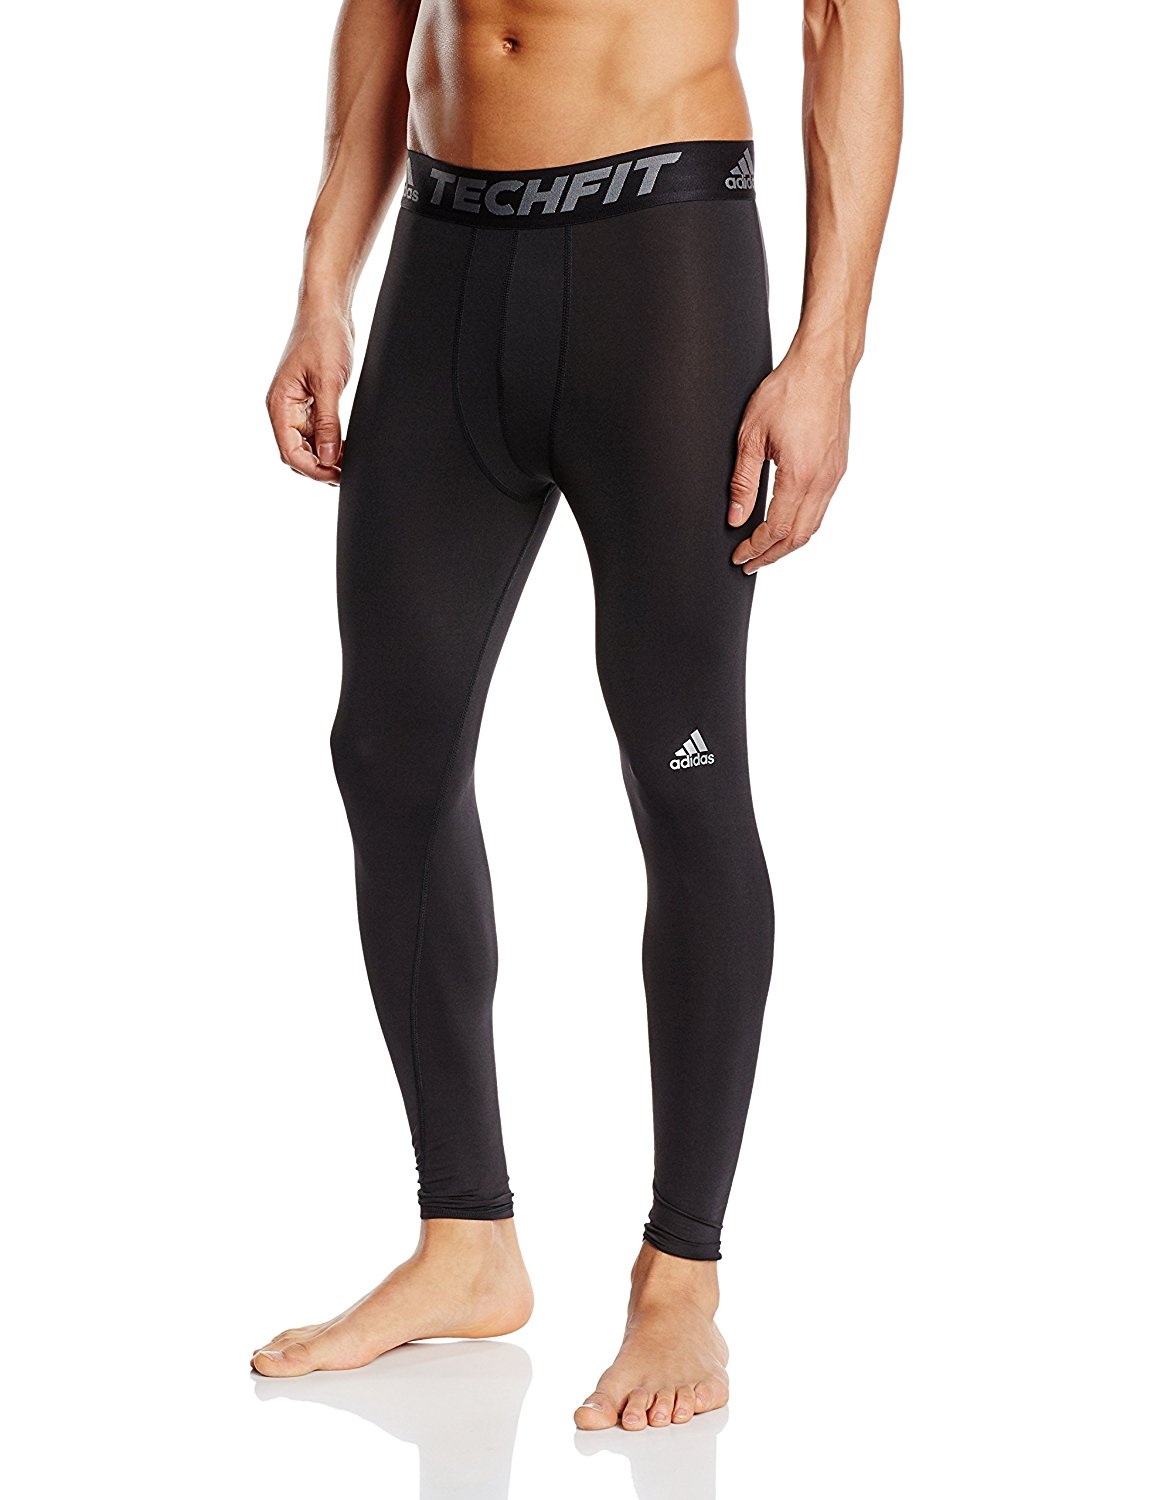 Buy adidas Mens TechFit Dig Short Tights in Cheap Price on Alibaba.com 6bc9fbbeb8340